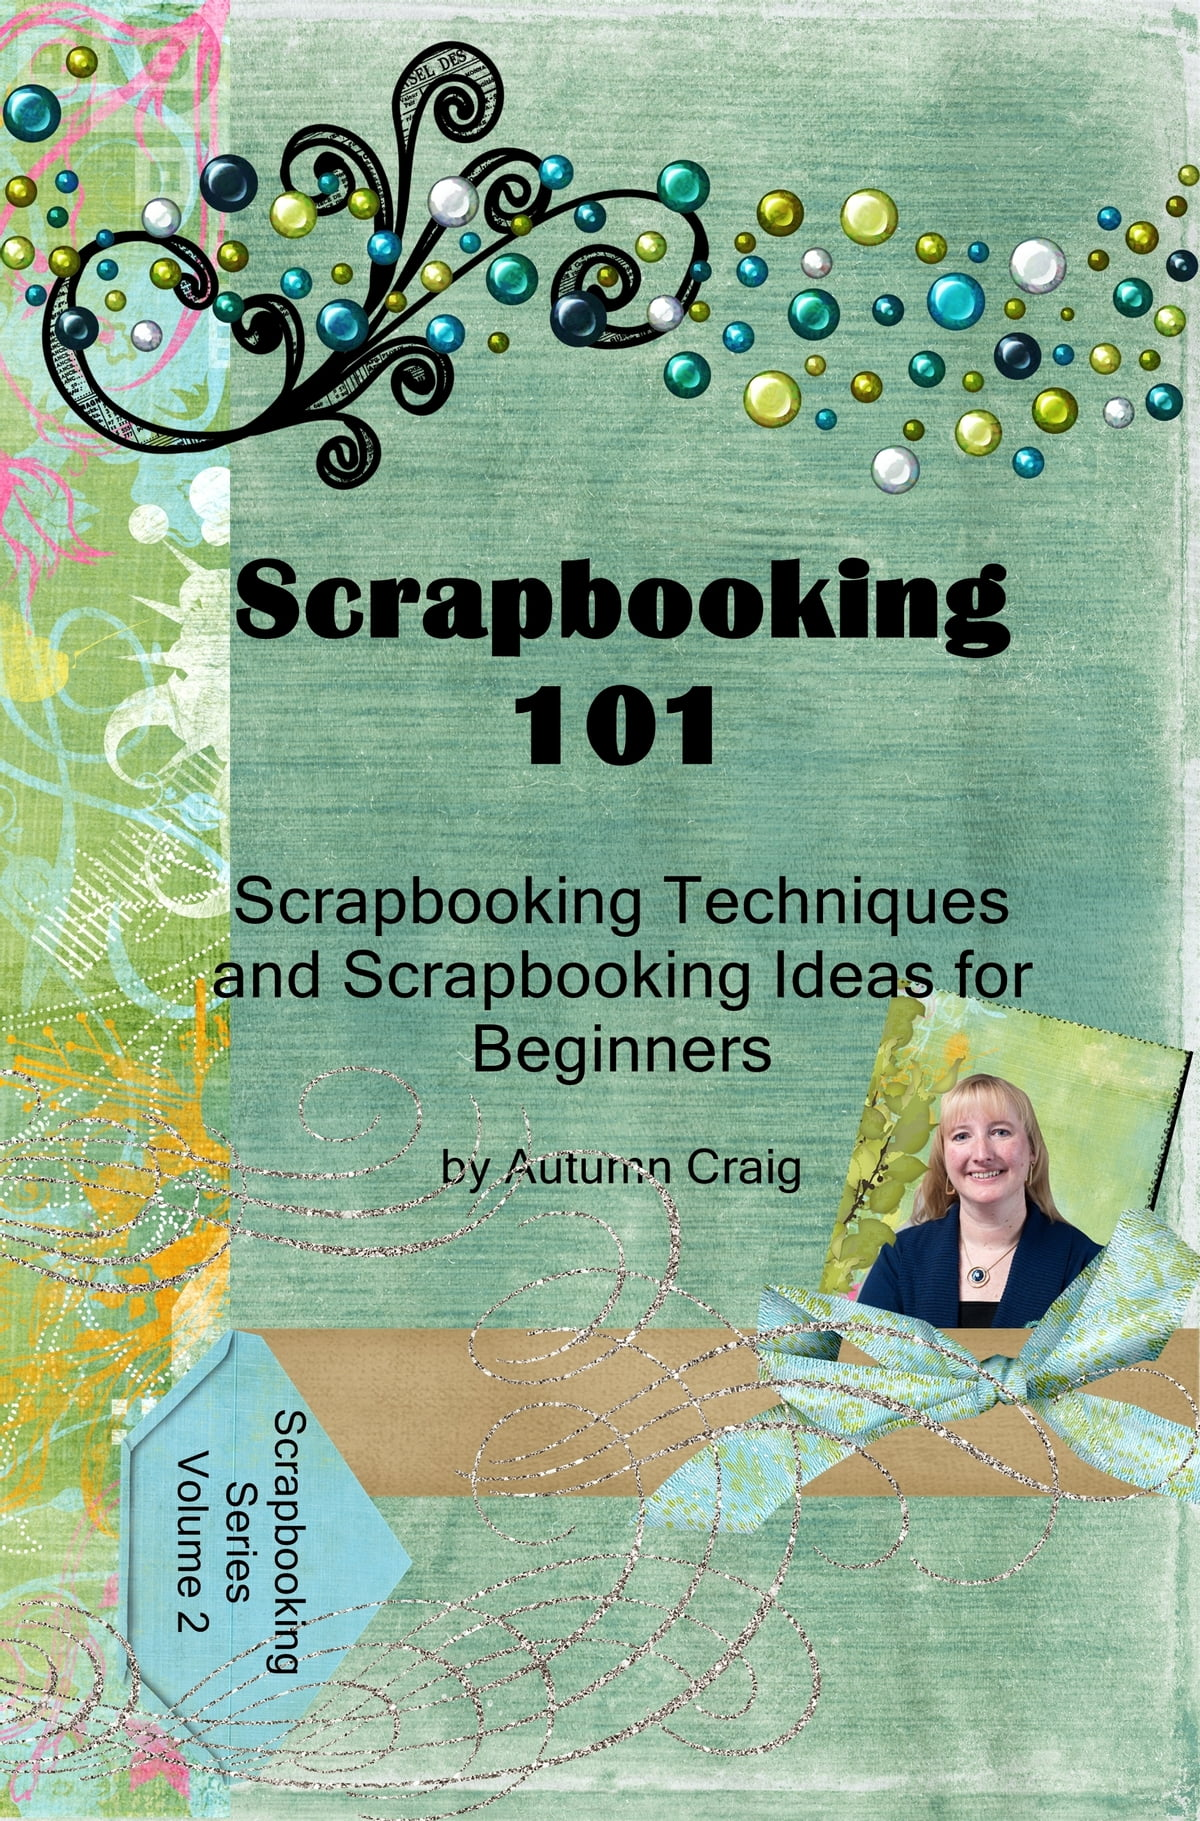 Scrapbooking 101 Scrapbooking Techniques And Scrapbooking Ideas For